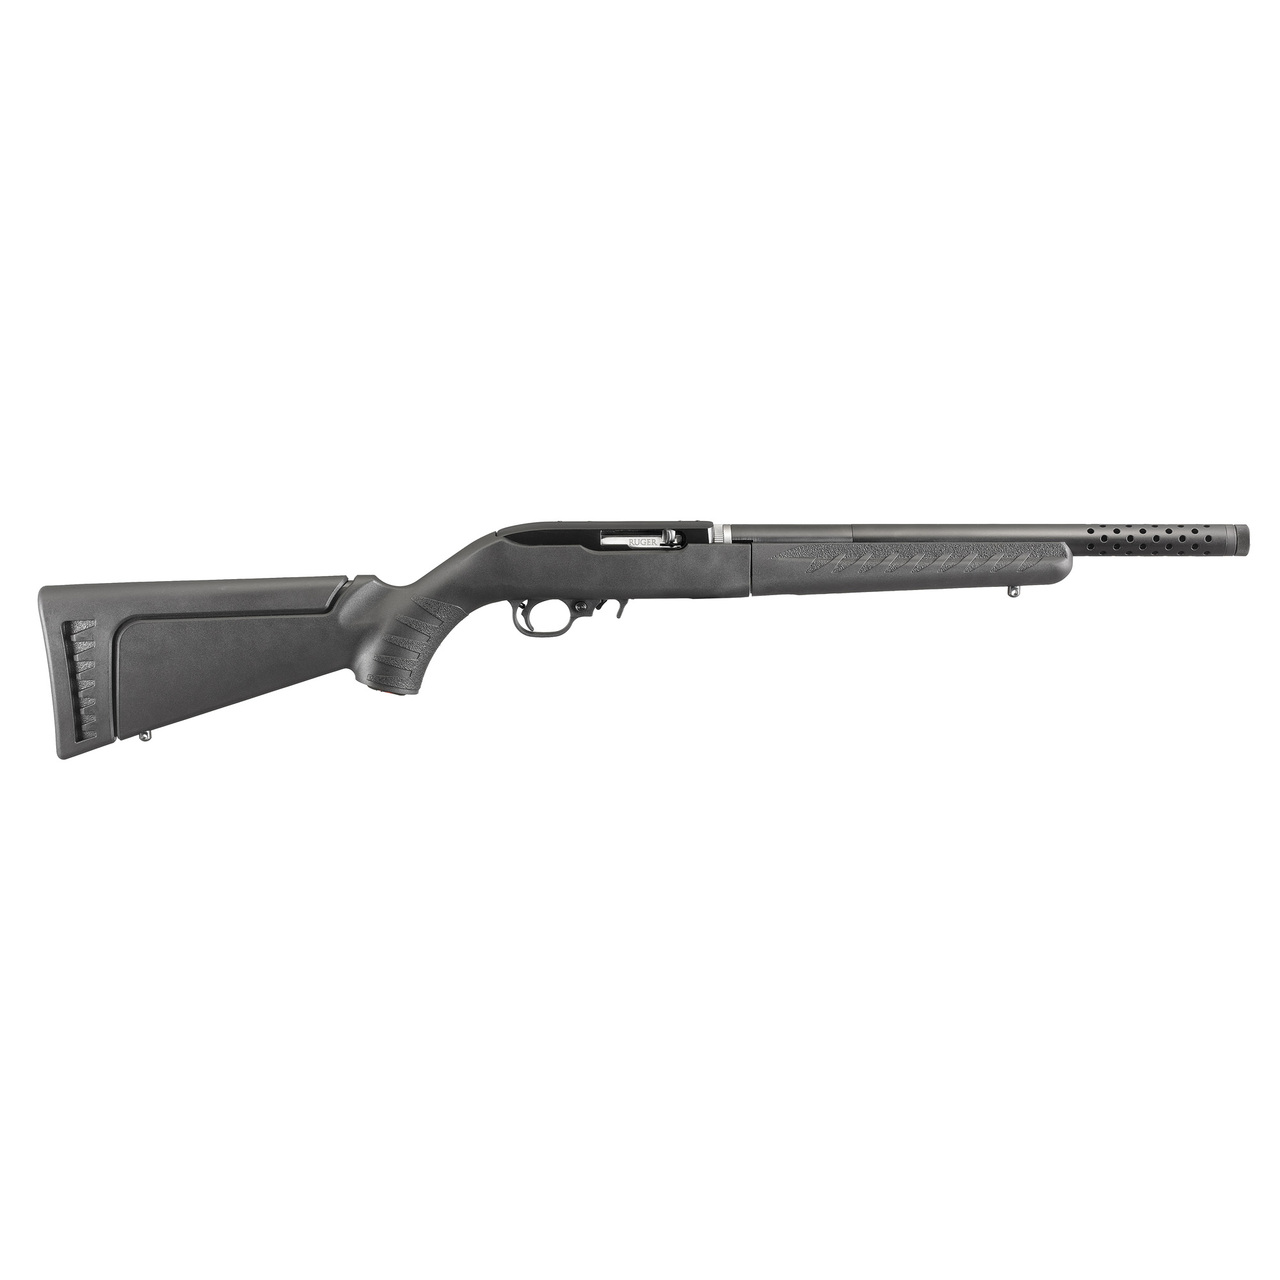 Ruger 10/22 Takedown Semi-automatic Rifle 22 LR Lite